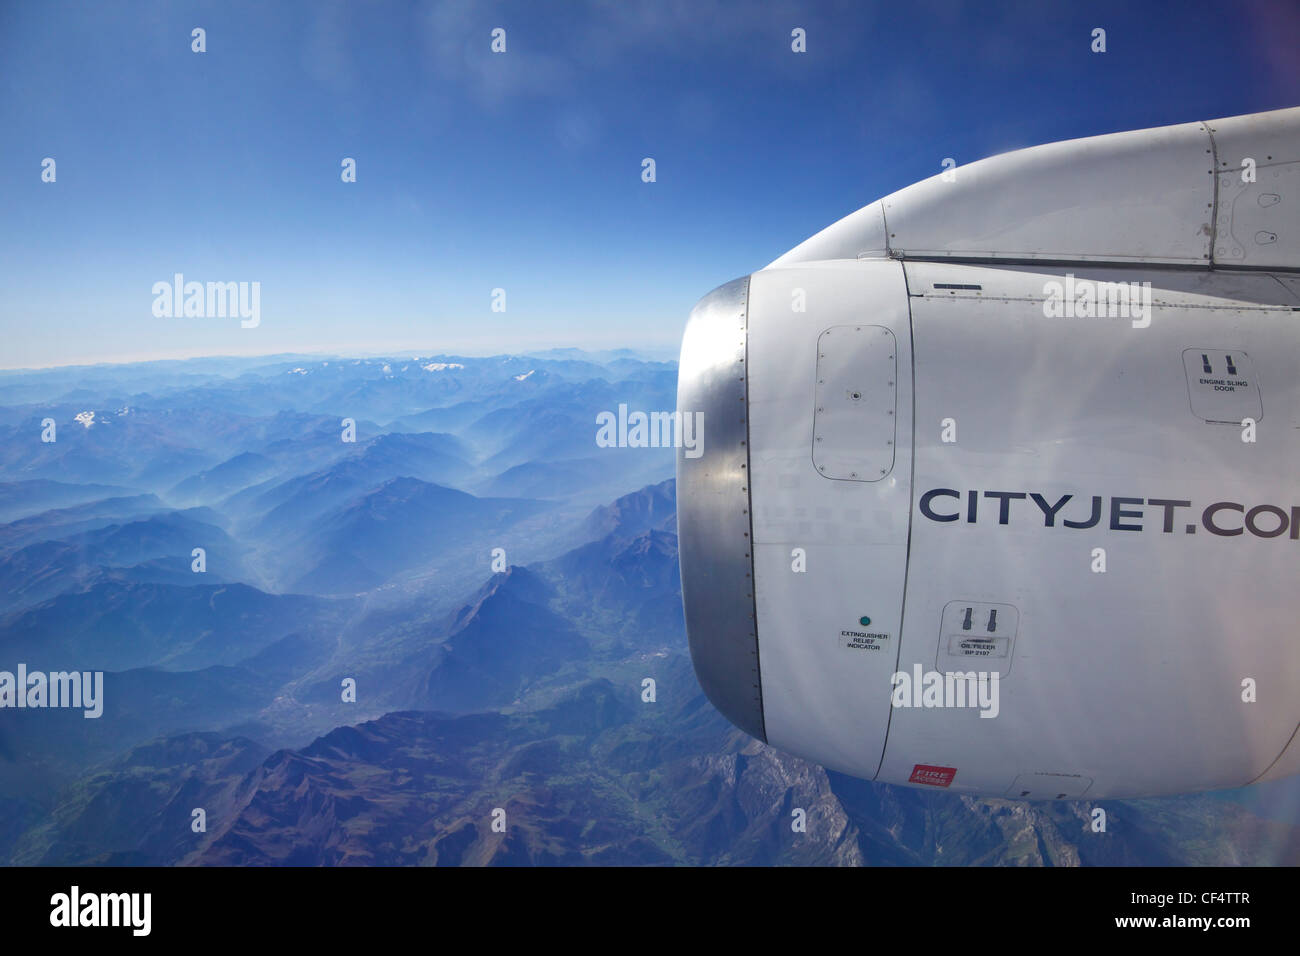 Jet engine on cityjet passenger aircraft over the italian alps, Northern Italy, Europe - Stock Image